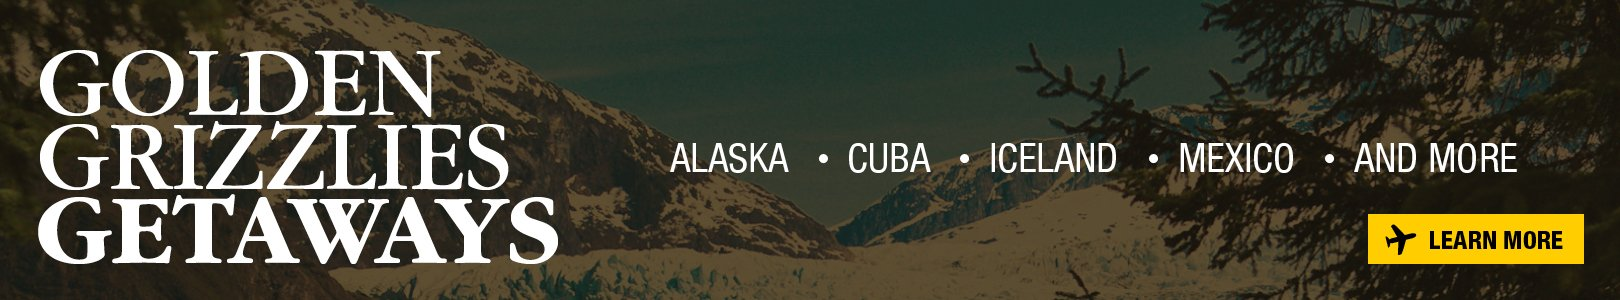 Oakland University Golden Grizzlies Getaway Alumni Travel Program. Visit Alaska, Cuba, Iceland, Mexico, and more.